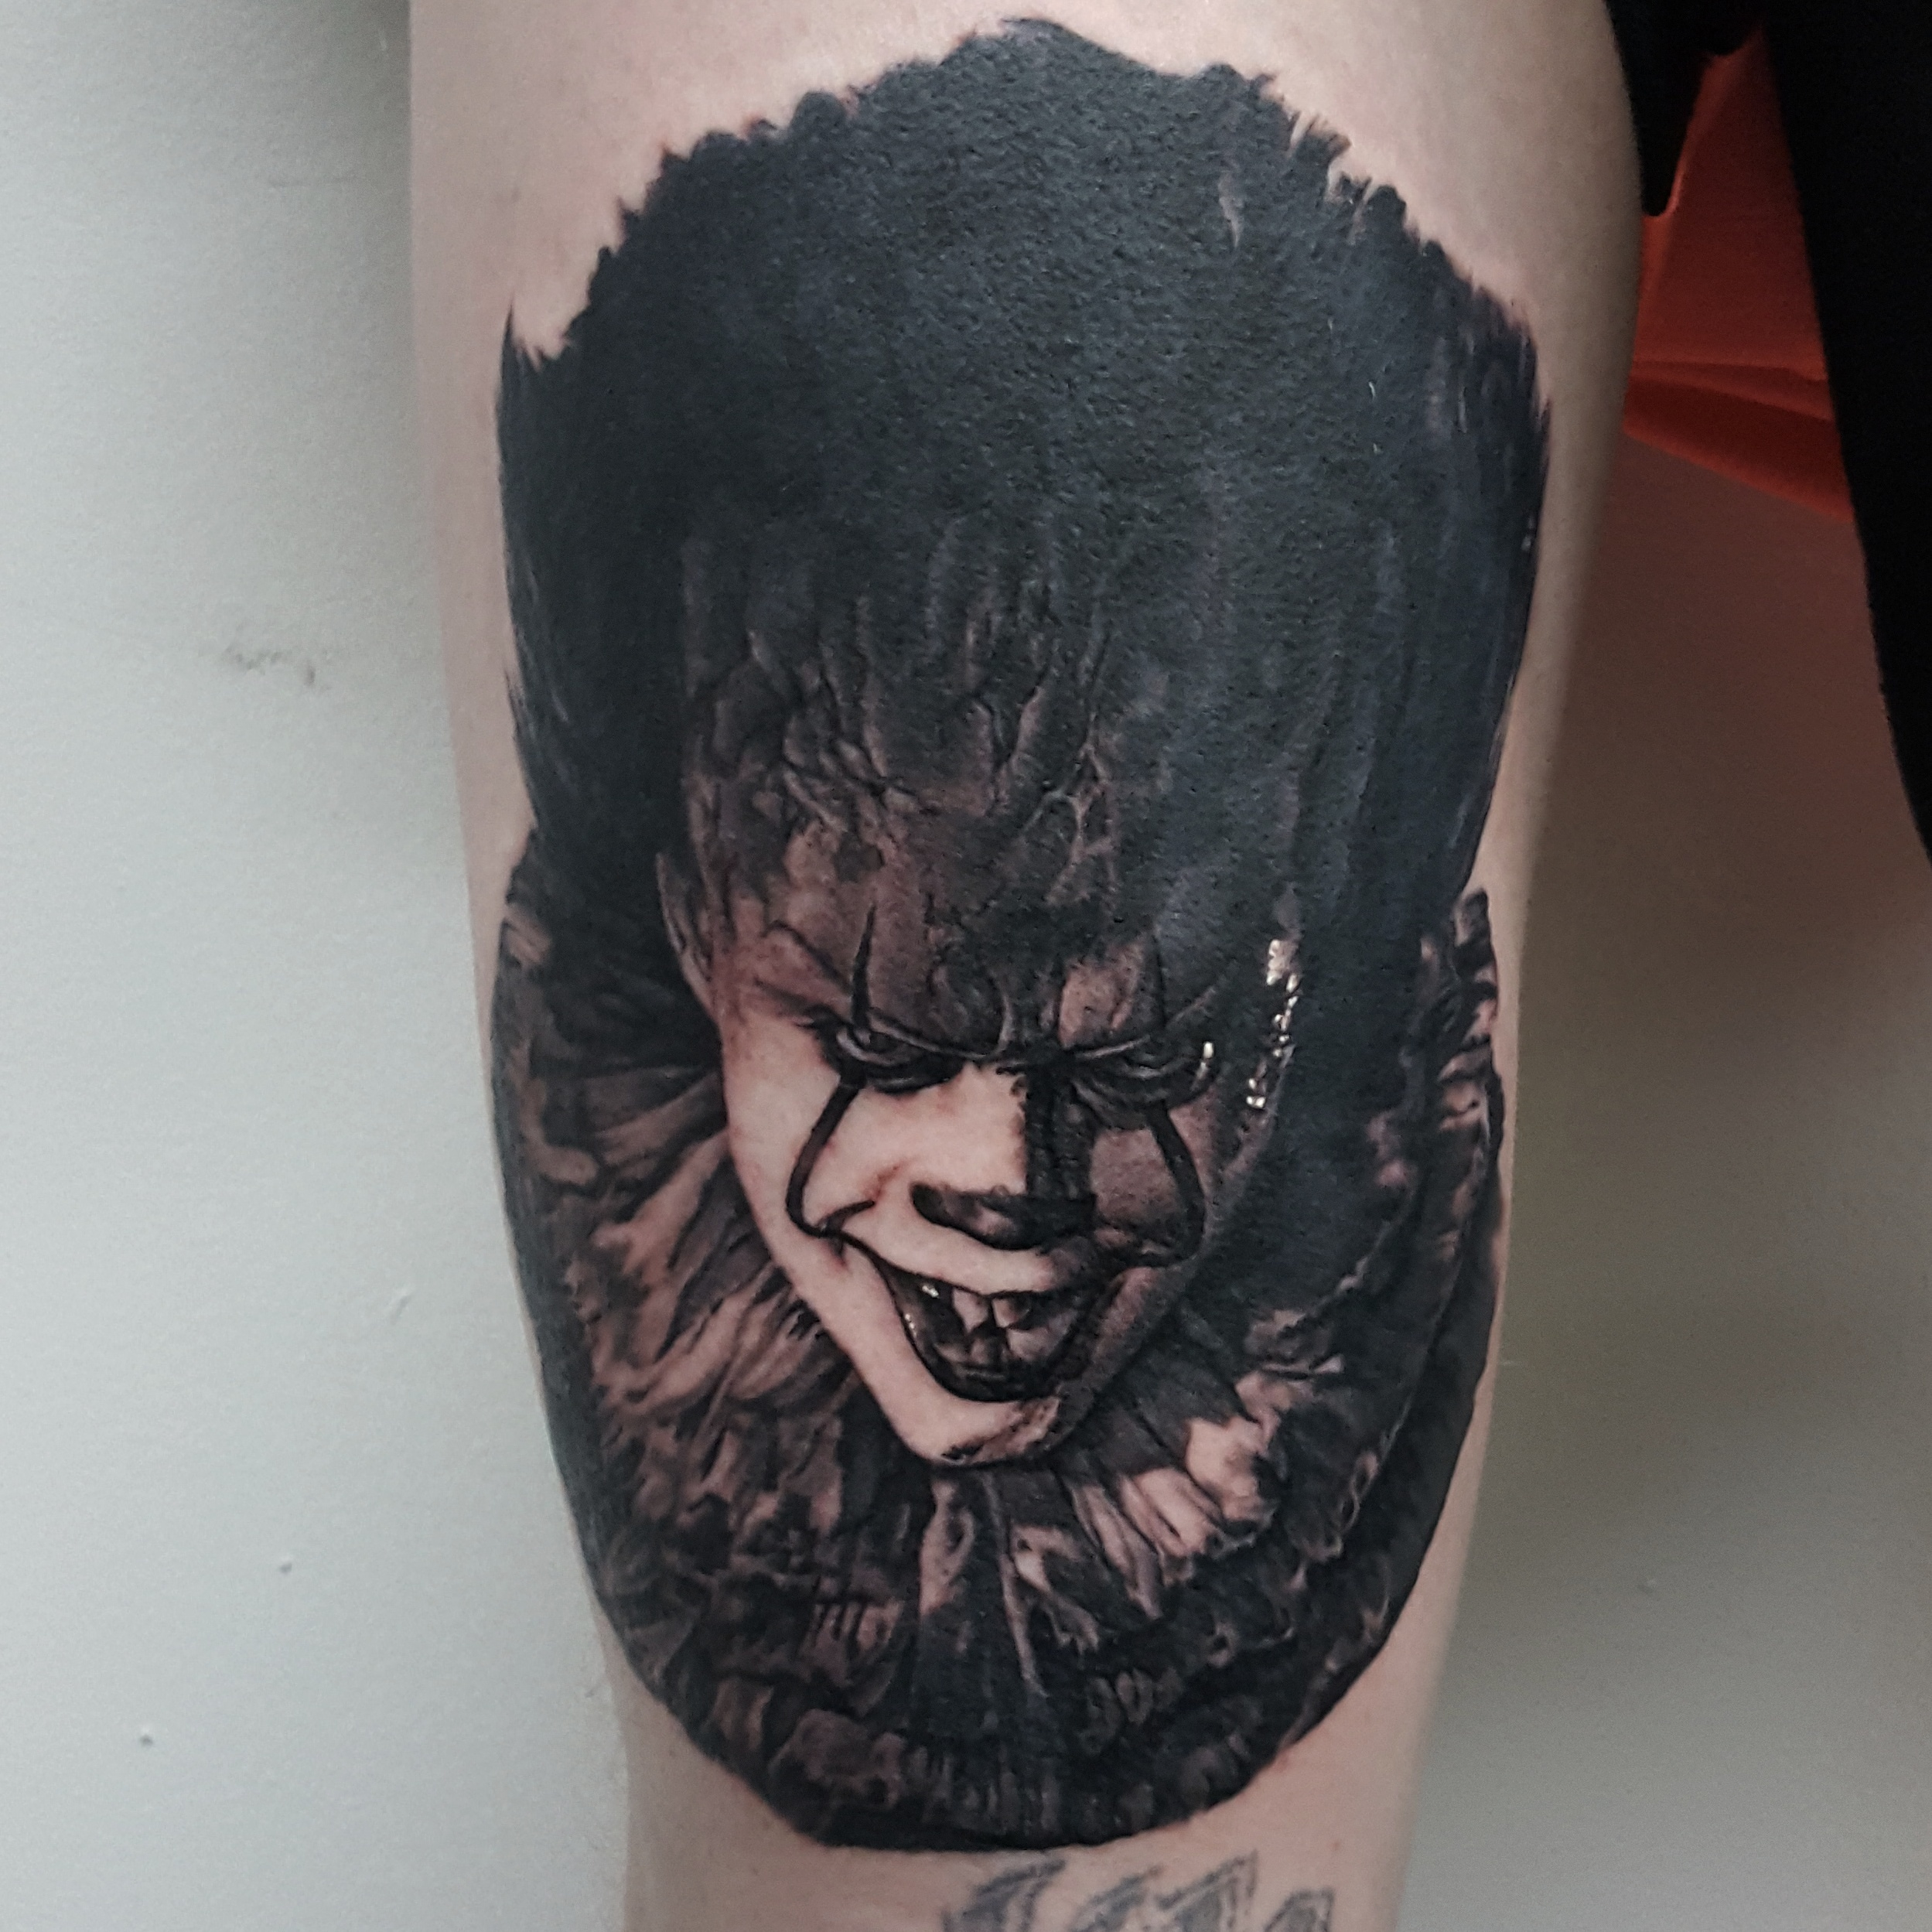 Photorealistic Pennywise the Clown tattoo by  Danielle Bar